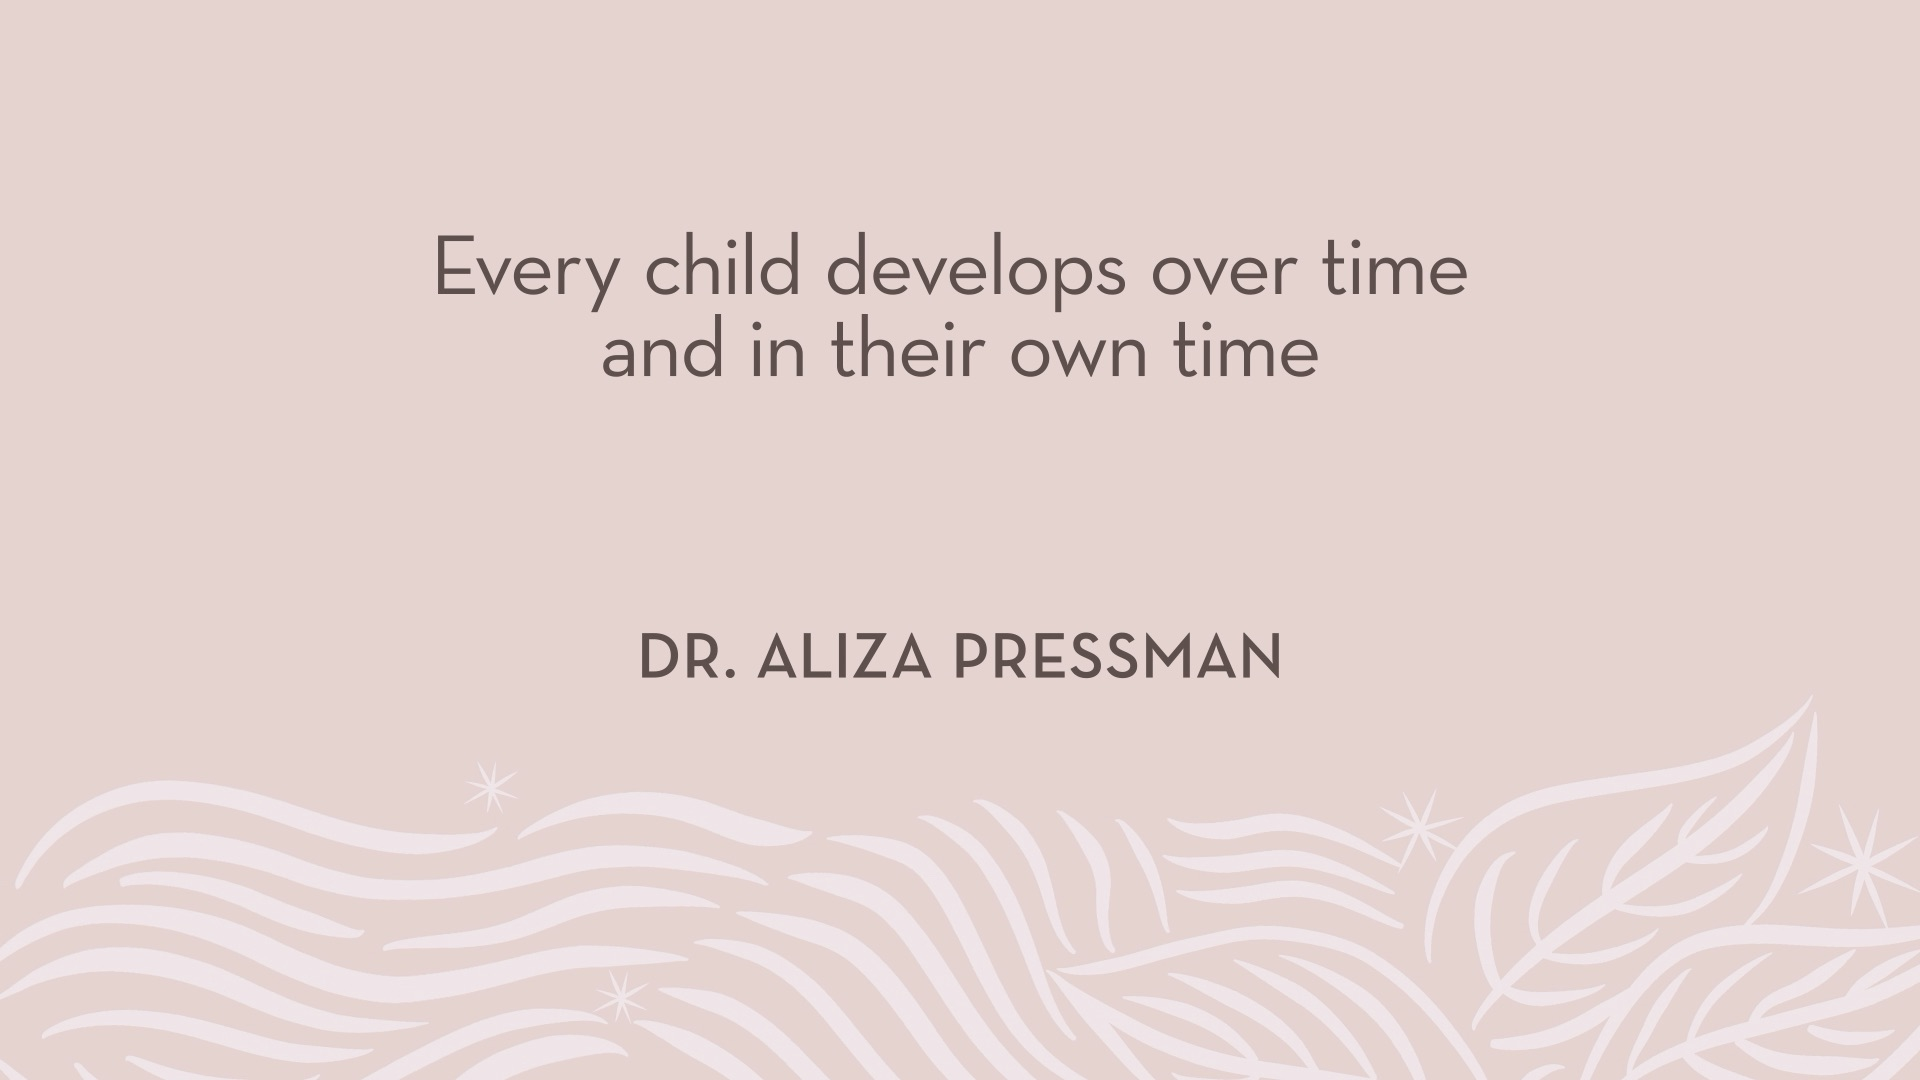 Dr. Pressman | Every child develops over time and in their own time